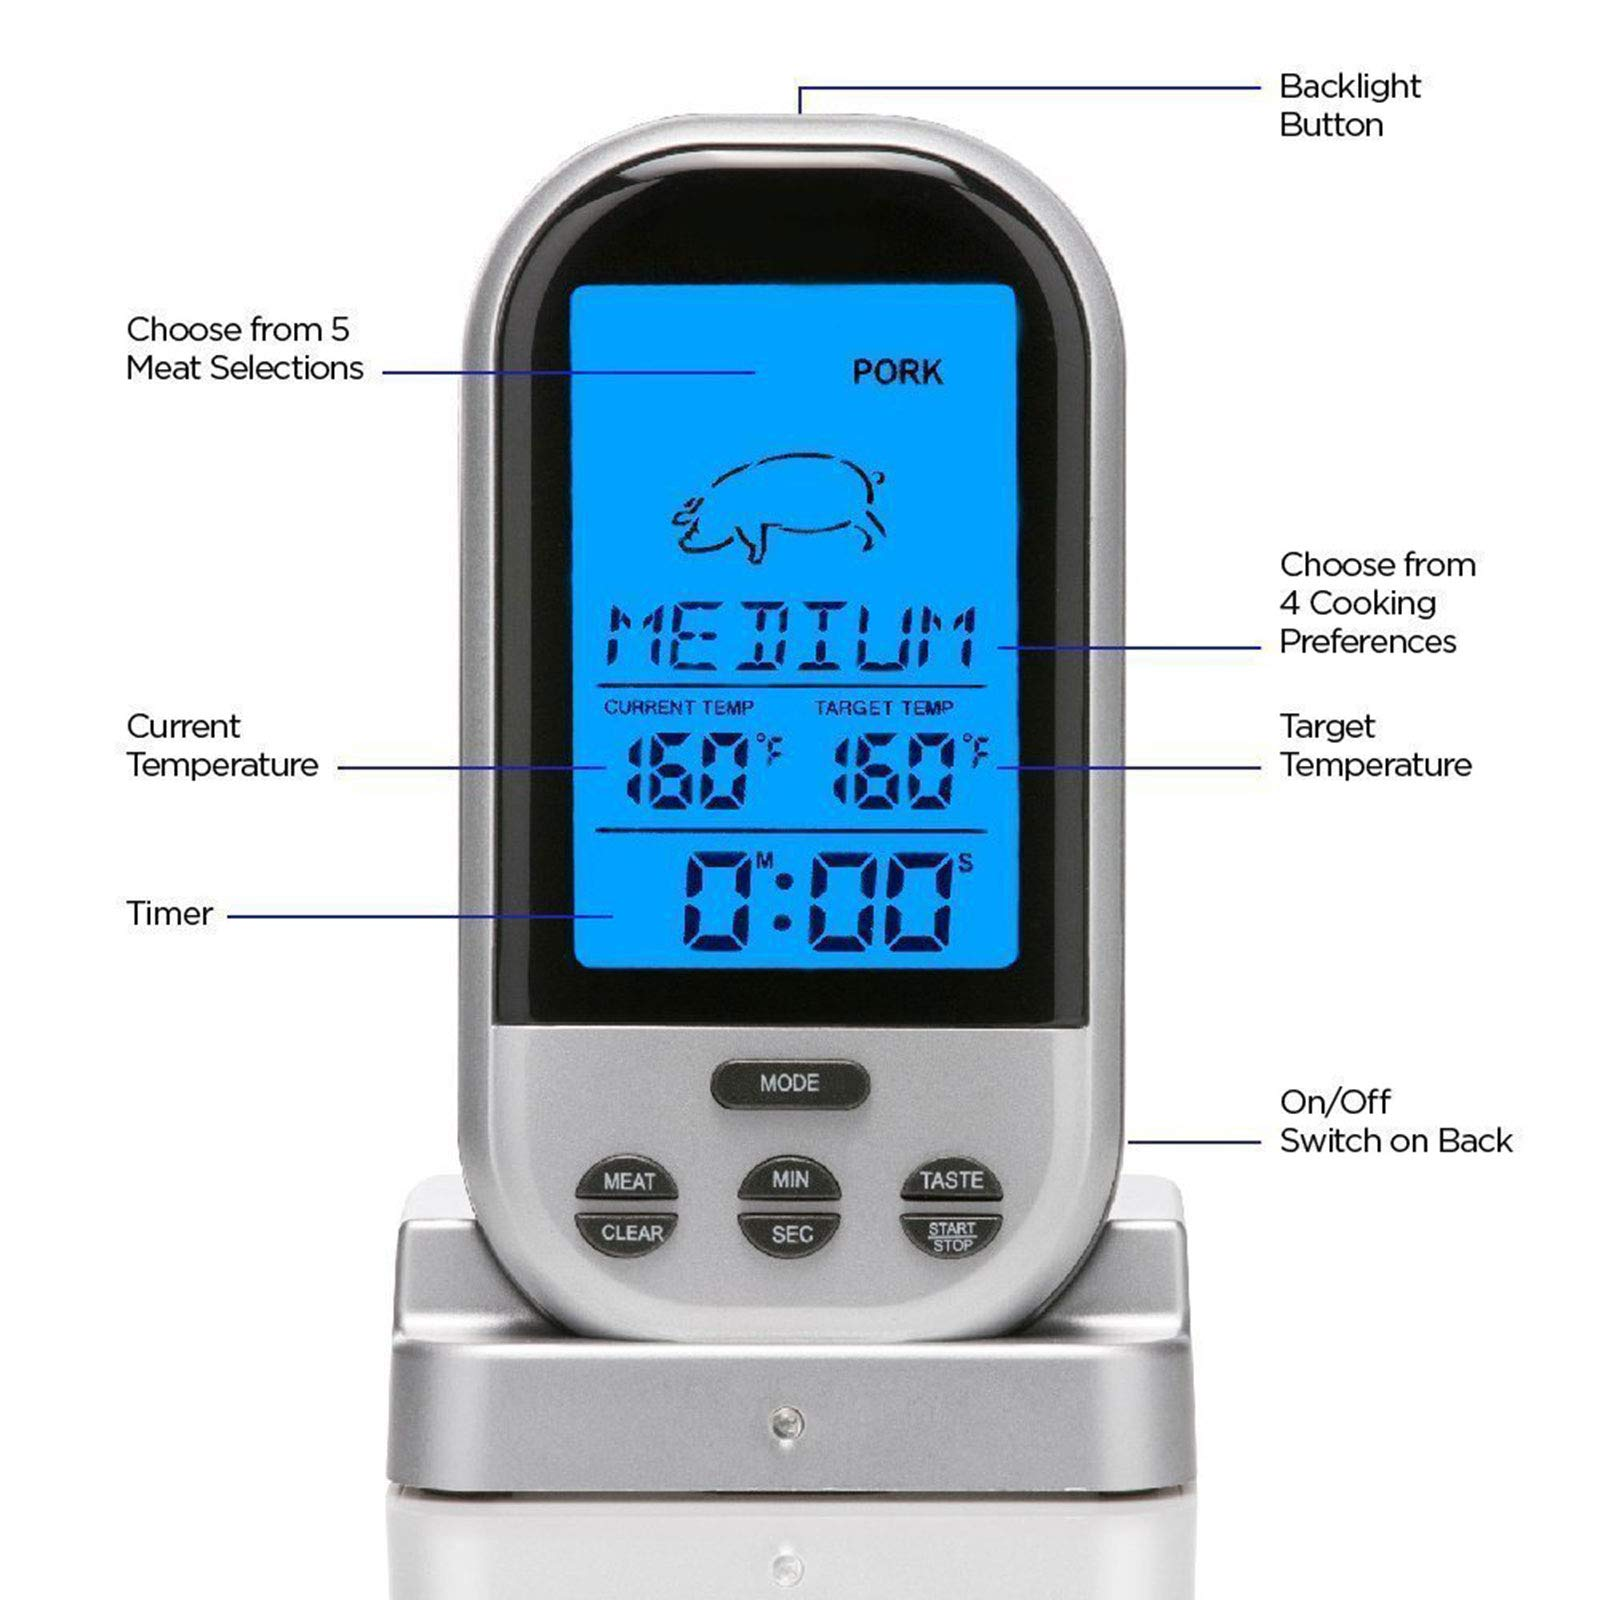 Digital Meat Thermometer for Grilling with Instant Wireless Read and Backlit Digital Display for Cooking BBQ Grilling Smoker Kitchen by Belmint